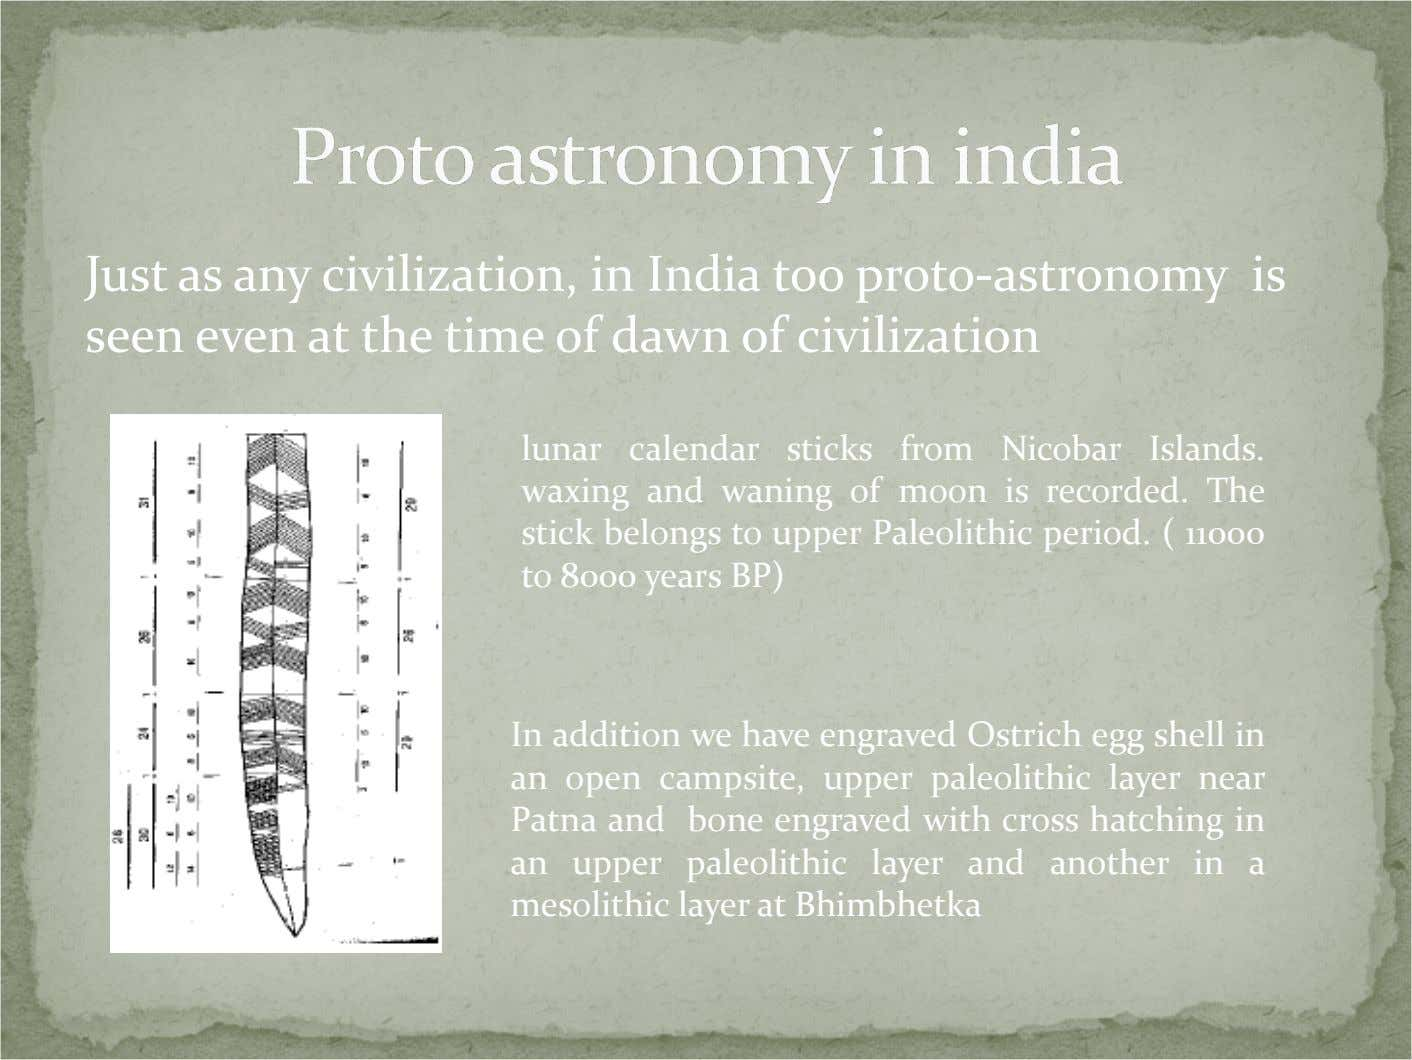 Just as any civilization, in India too proto-astronomy is seen even at the time of